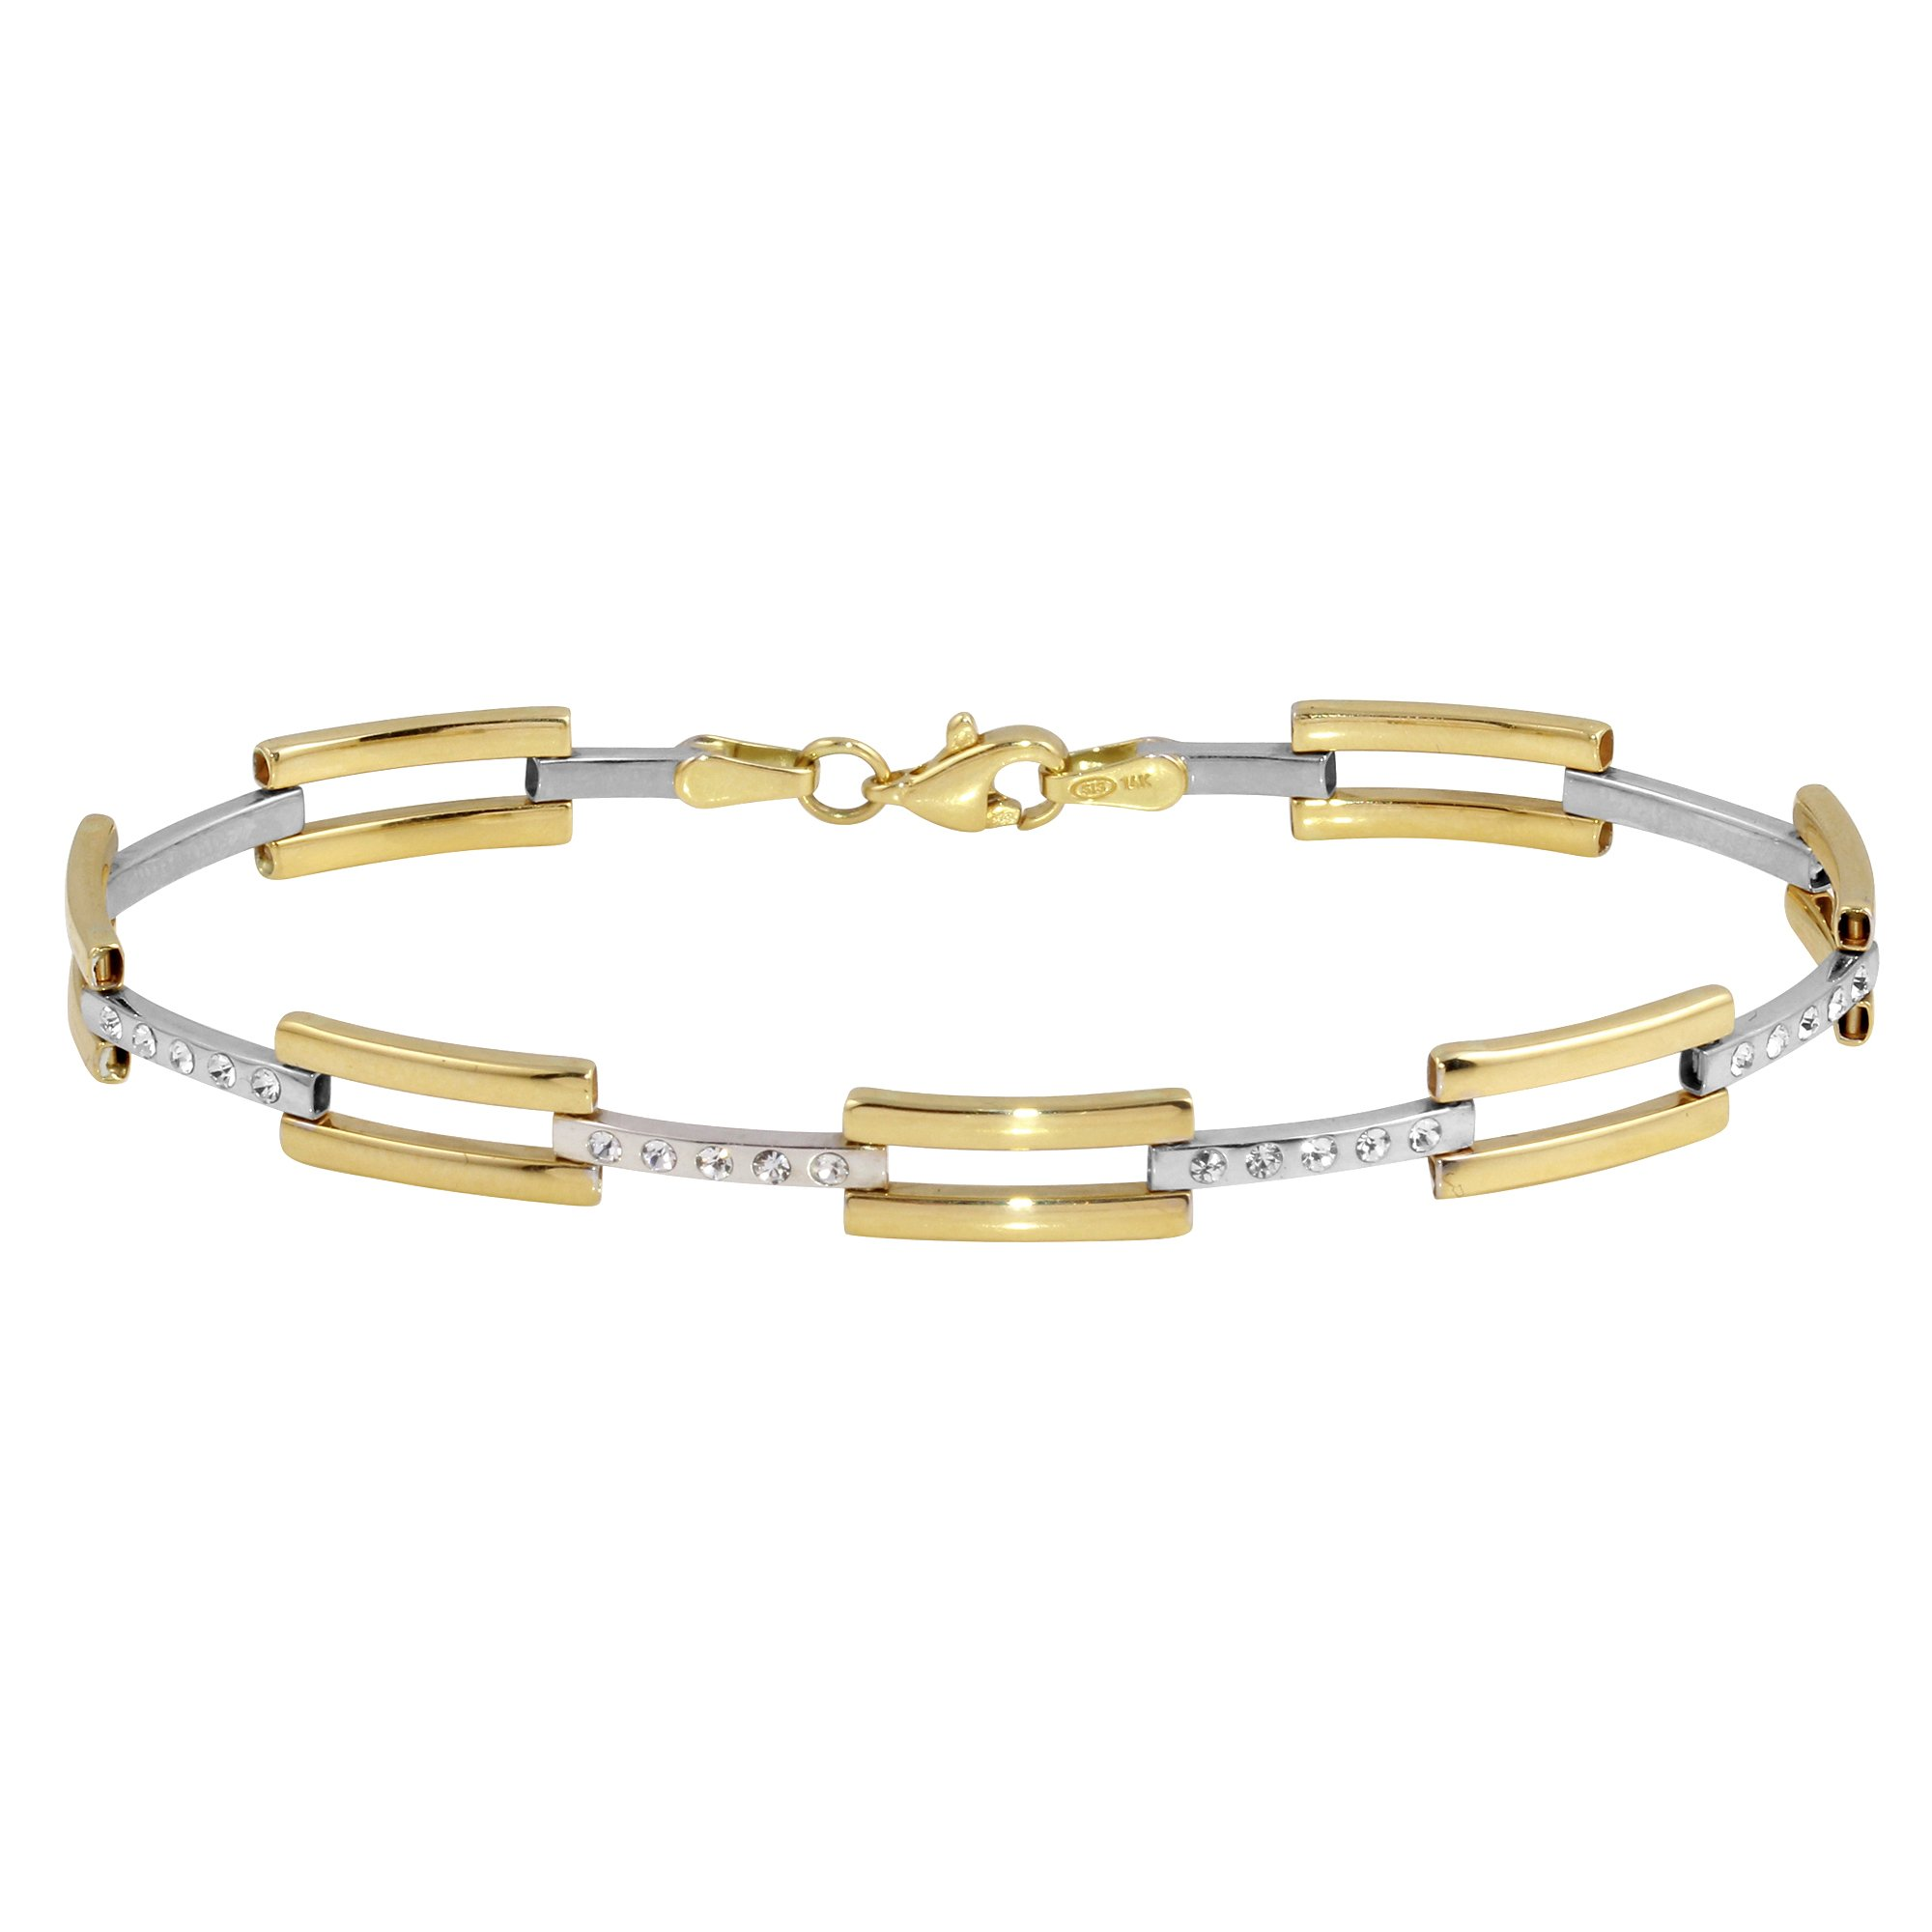 Polished 14k Yellow and White Gold Modern Stampato Love Bracelet with Cubic Zirconia Gemstones